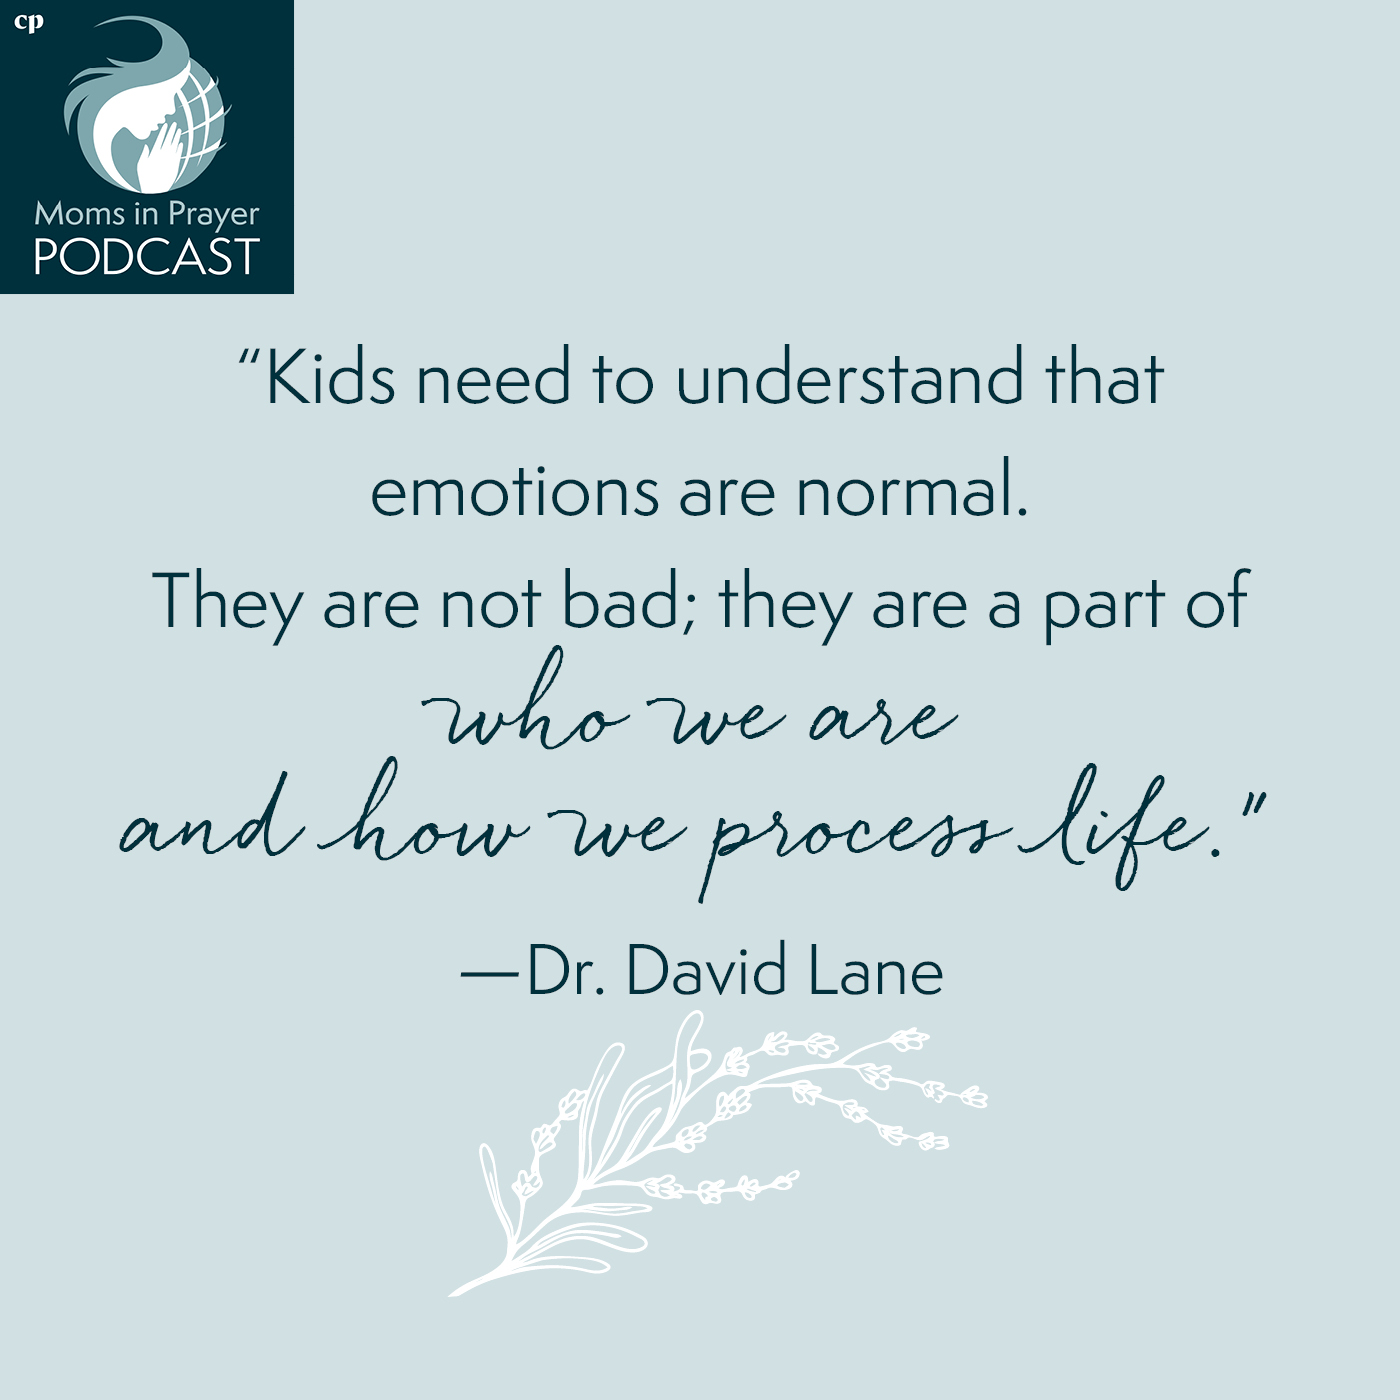 Kids understanding emotions through godly counsel